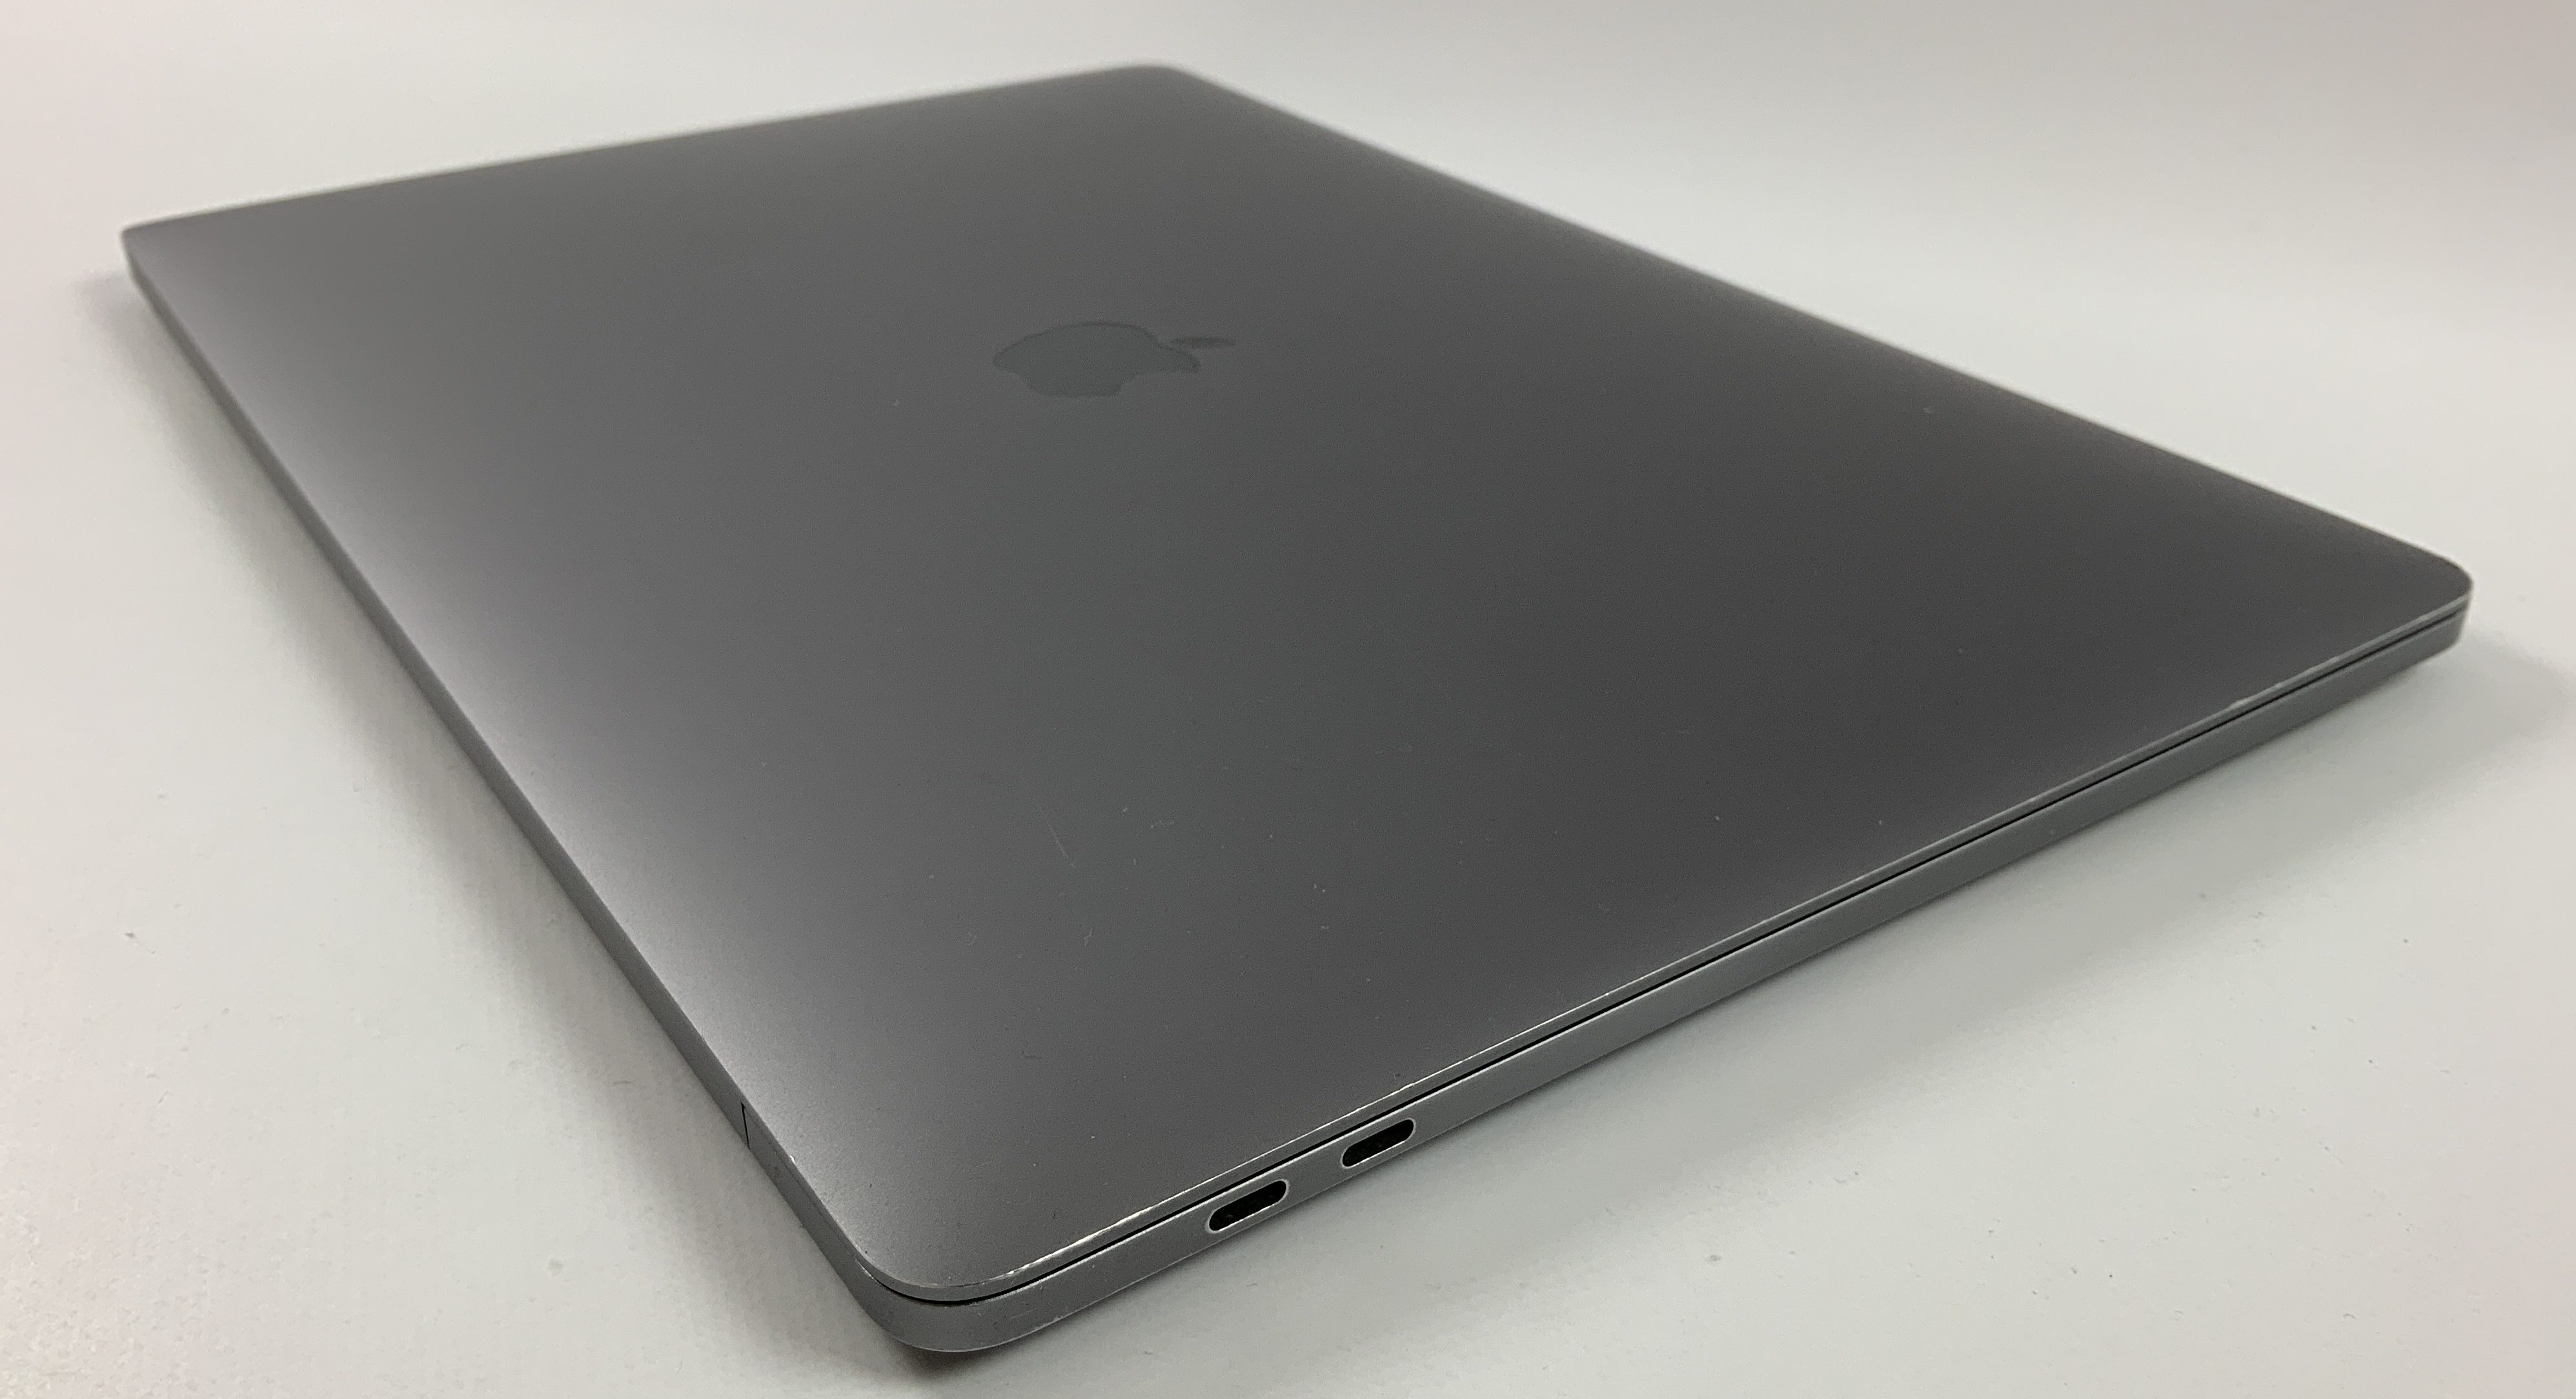 "MacBook Pro 15"" Touch Bar Late 2016 (Intel Quad-Core i7 2.6 GHz 16 GB RAM 1 TB SSD), Space Gray, Intel Quad-Core i7 2.6 GHz, 16 GB RAM, 1 TB SSD, image 3"